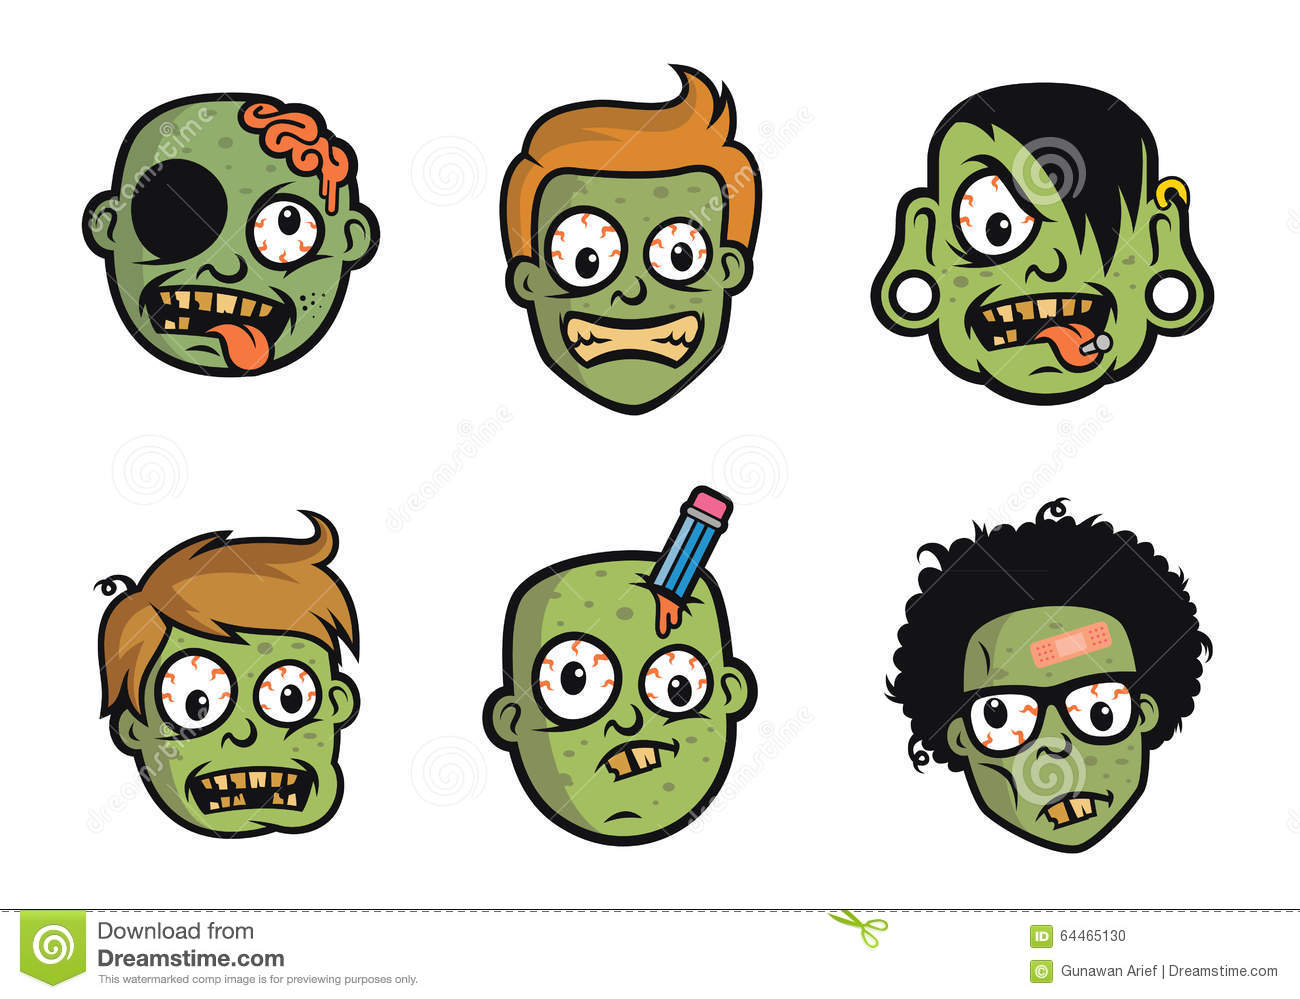 Character Design Zombie : Funny zombie head character design stock vector image